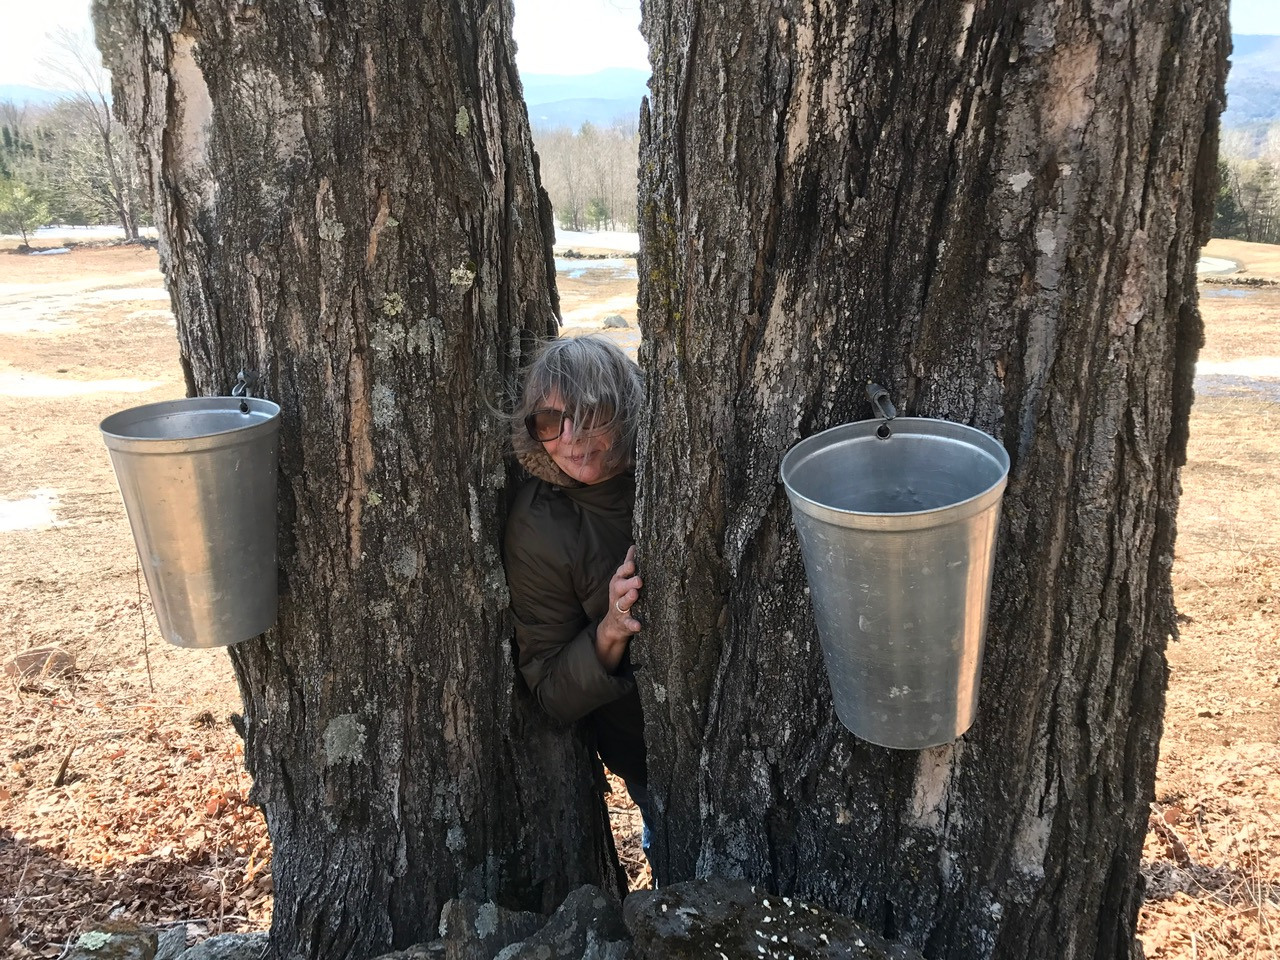 At 40 Gallons Of Sap To Make 1 Gallon Syrup You Can Imagine How Much Time That Takes